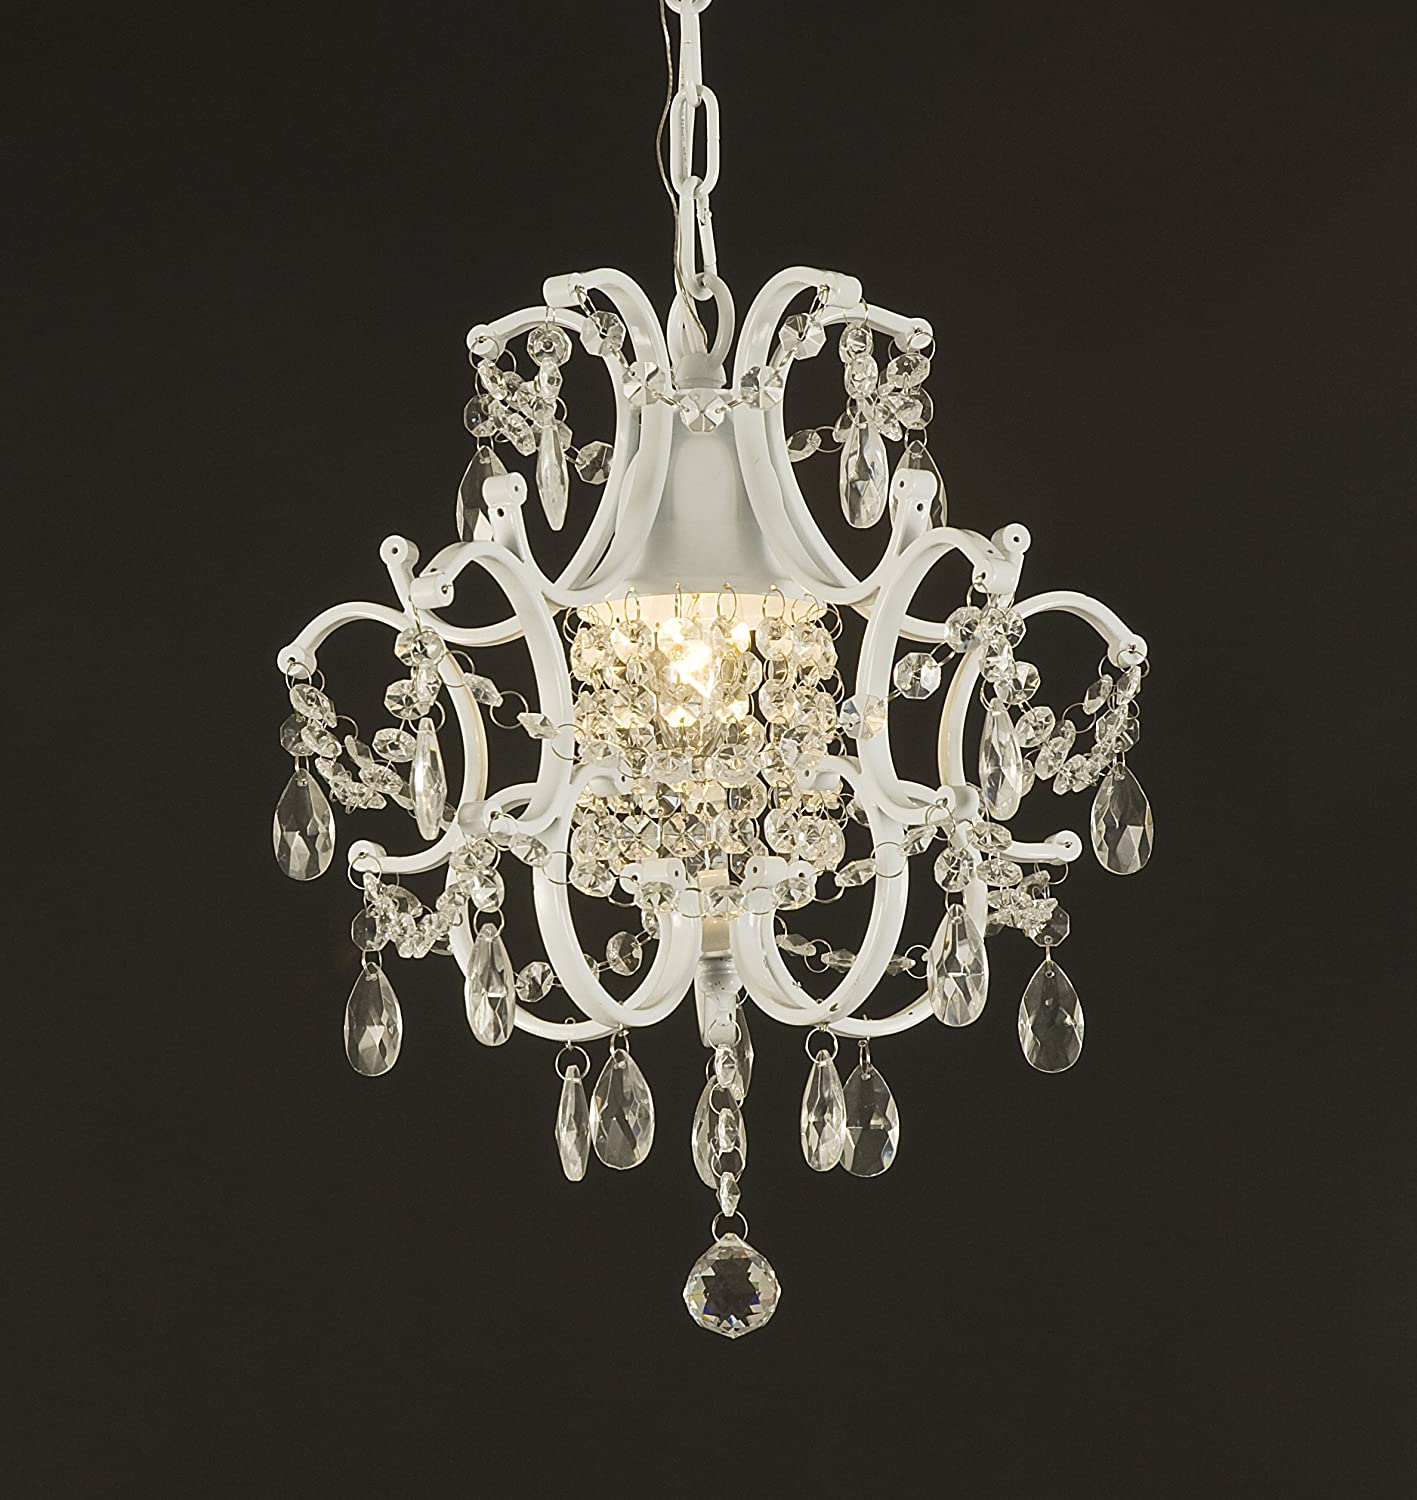 Jac D Lights J10 592 1 Wrought Iron Crystal Chandelier 14x11x1